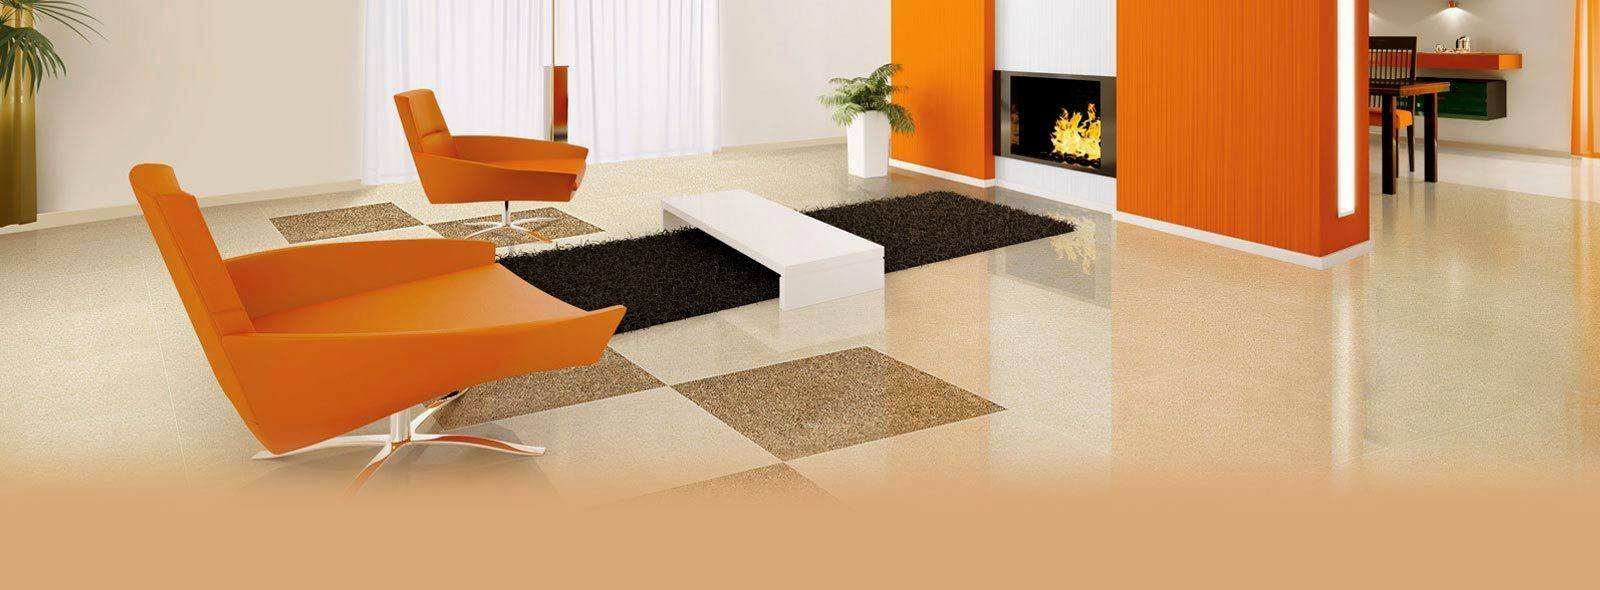 Floor Tiles Design Living Room Credit India